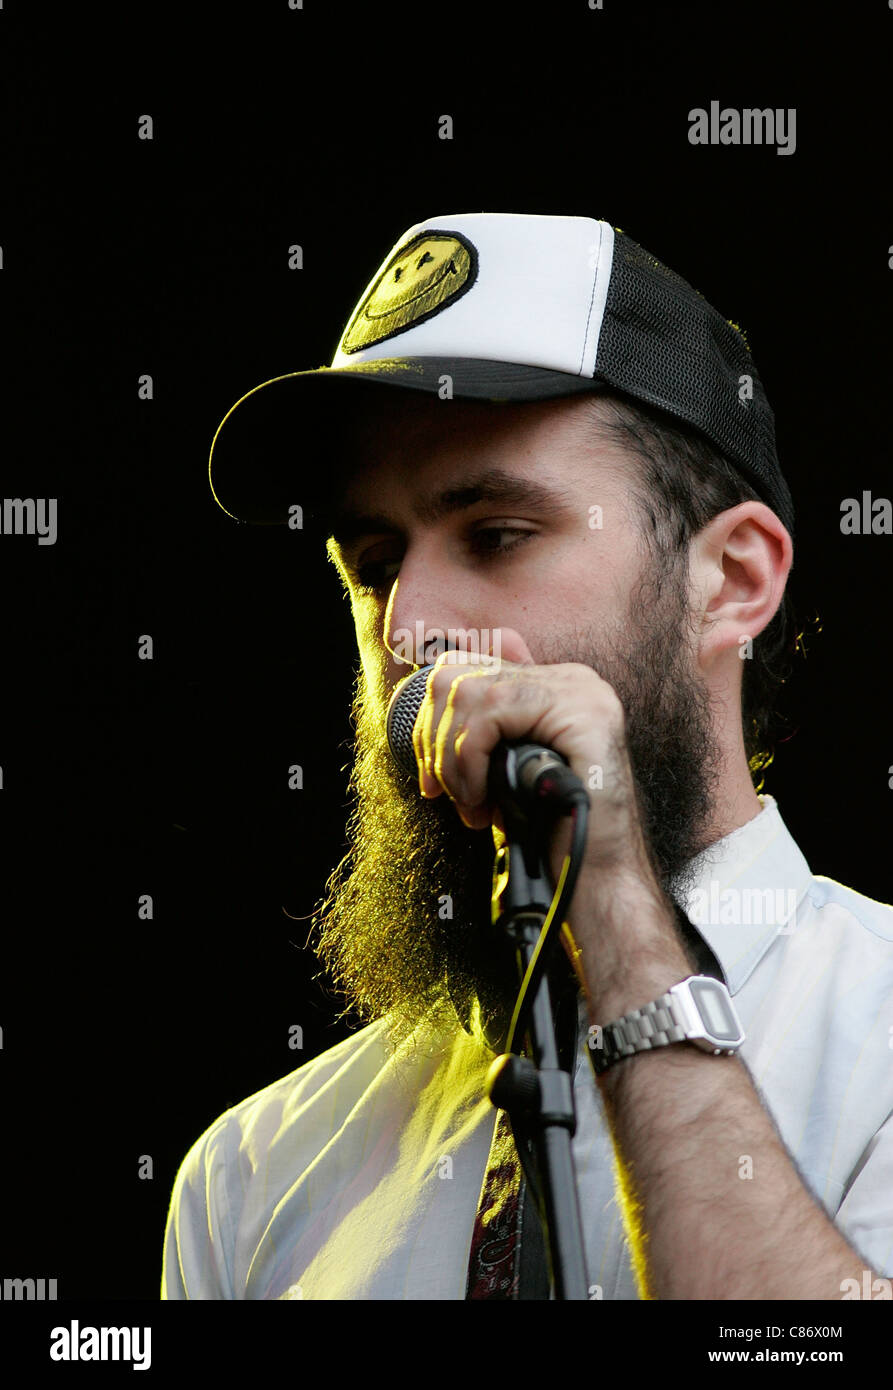 BELFAST, UNITED KINGDOM - AUGUST 15: <b>David Meads</b> AKA Scroobius Pip performs ... - belfast-united-kingdom-august-15-david-meads-aka-scroobius-pip-performs-C86X0M